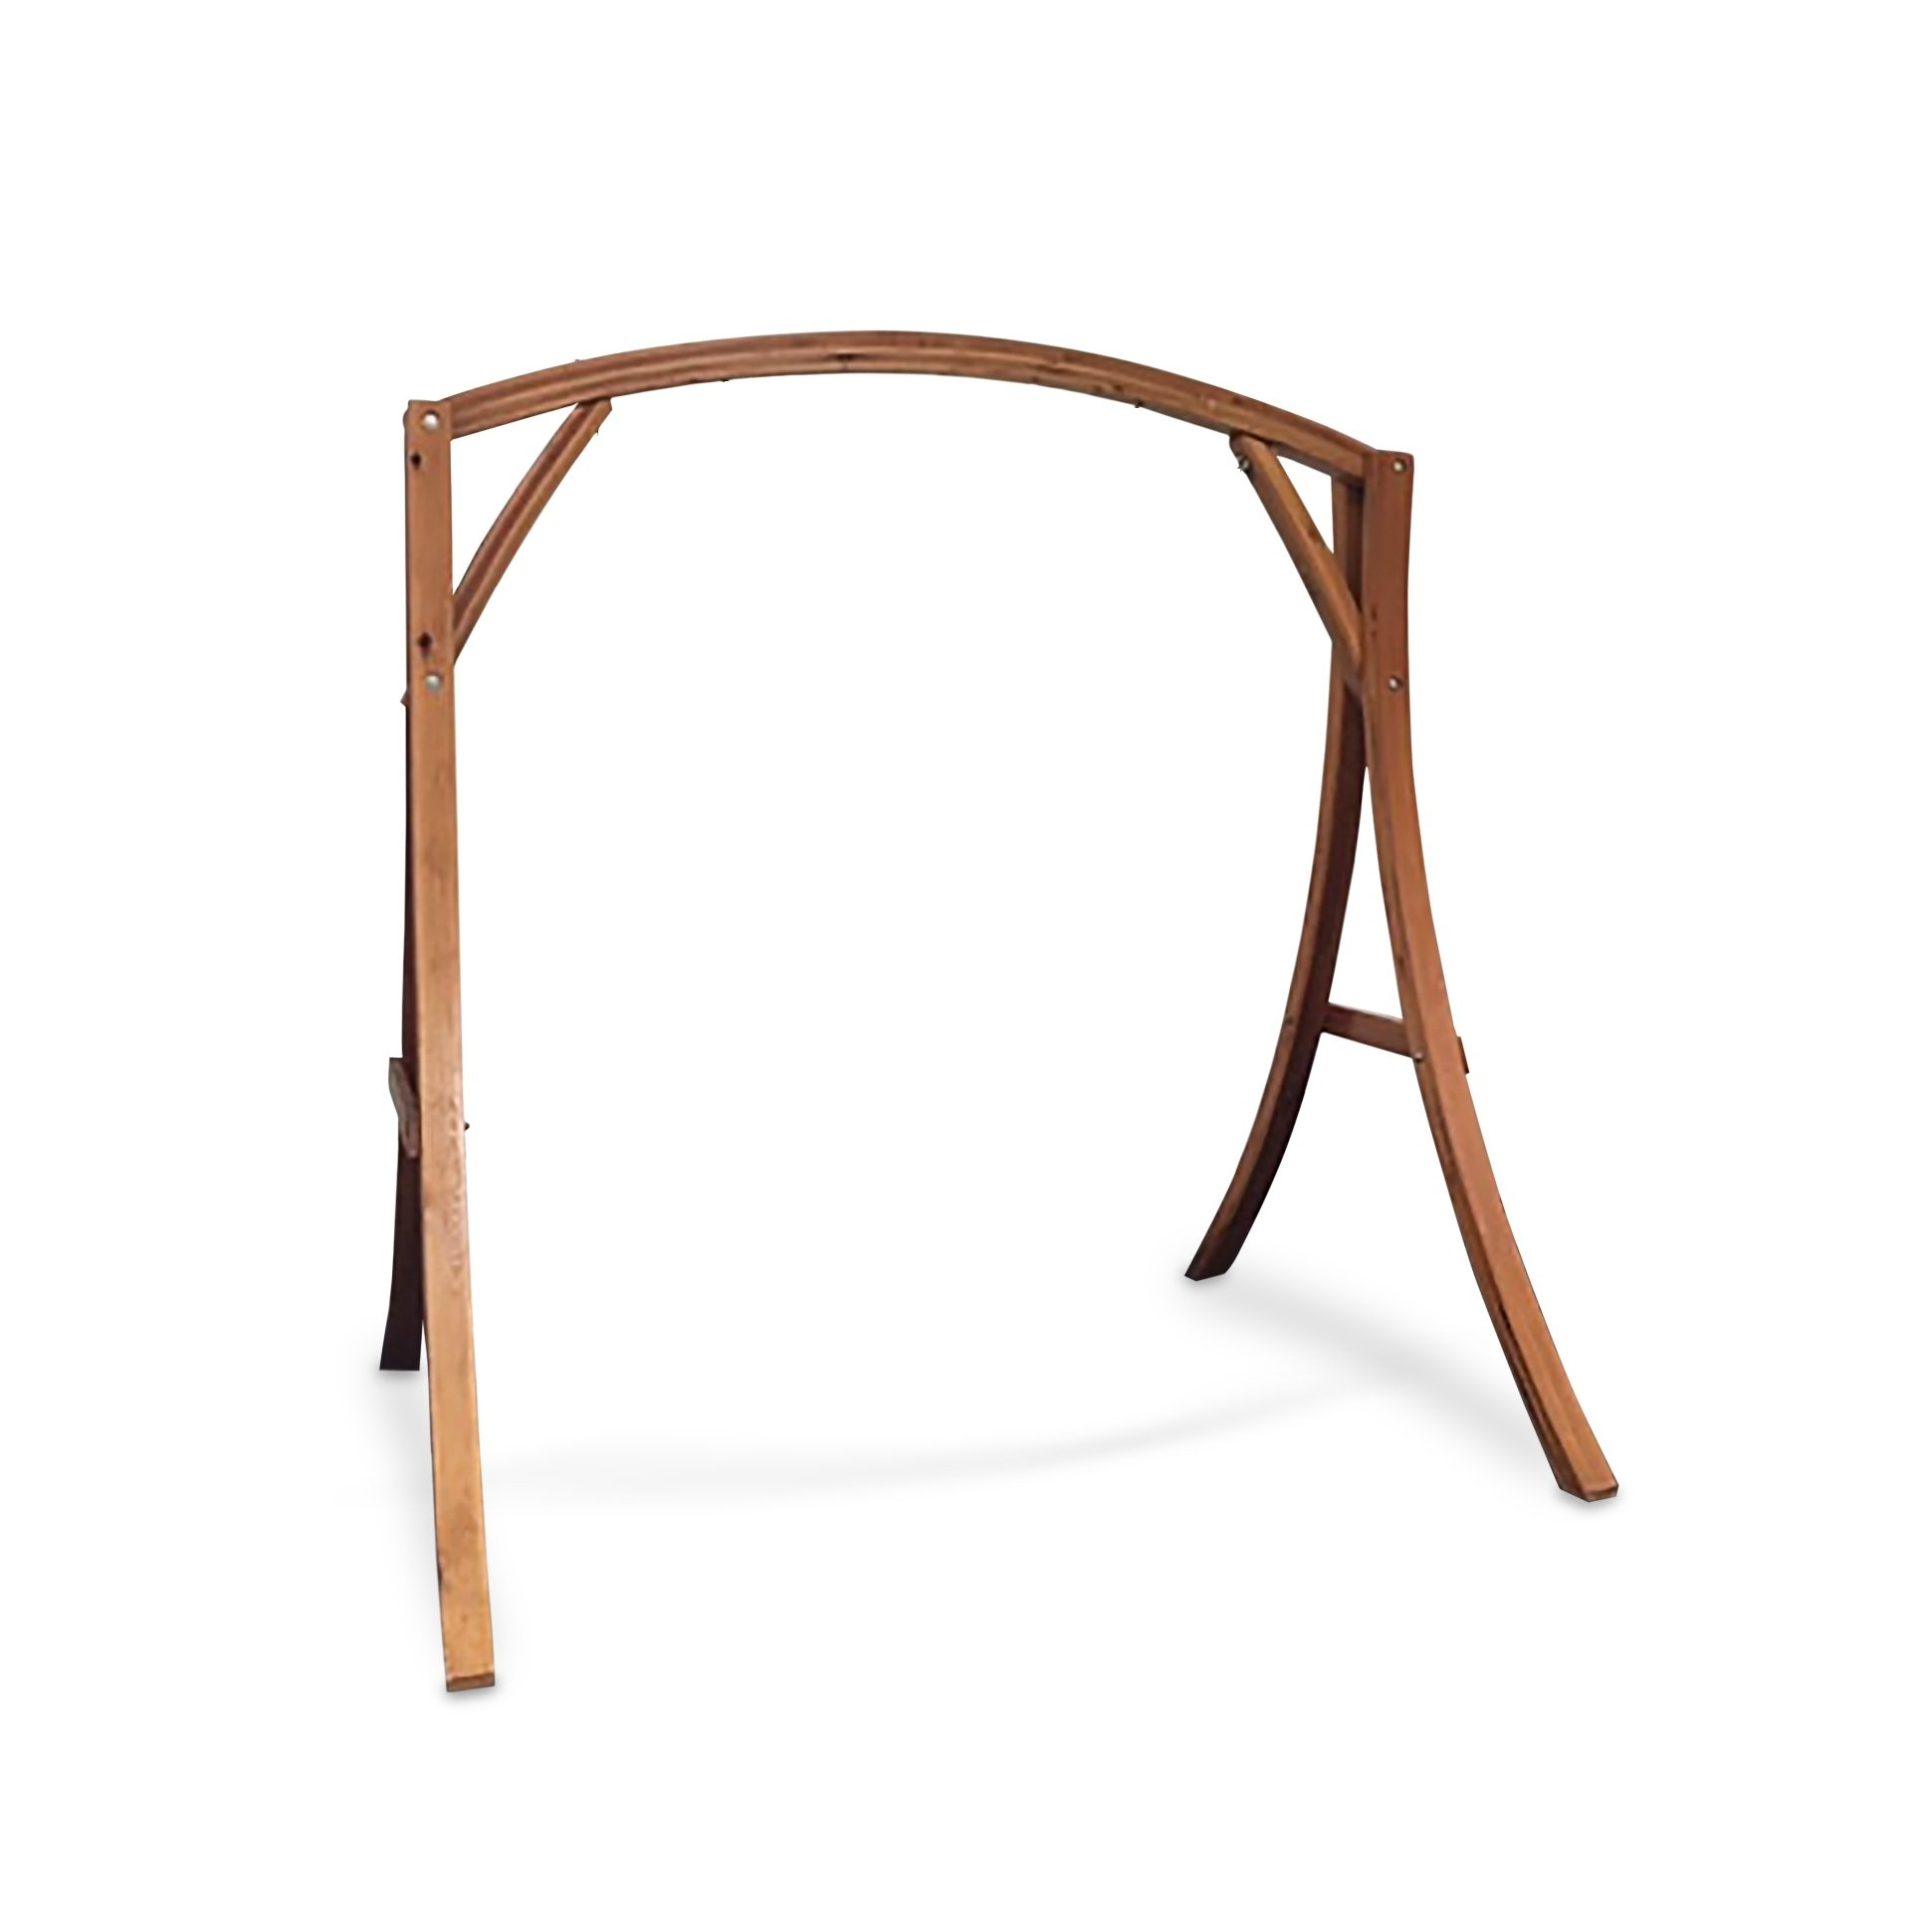 South Mission Wooden Arch Wooden Hammock Chair Swing Stand